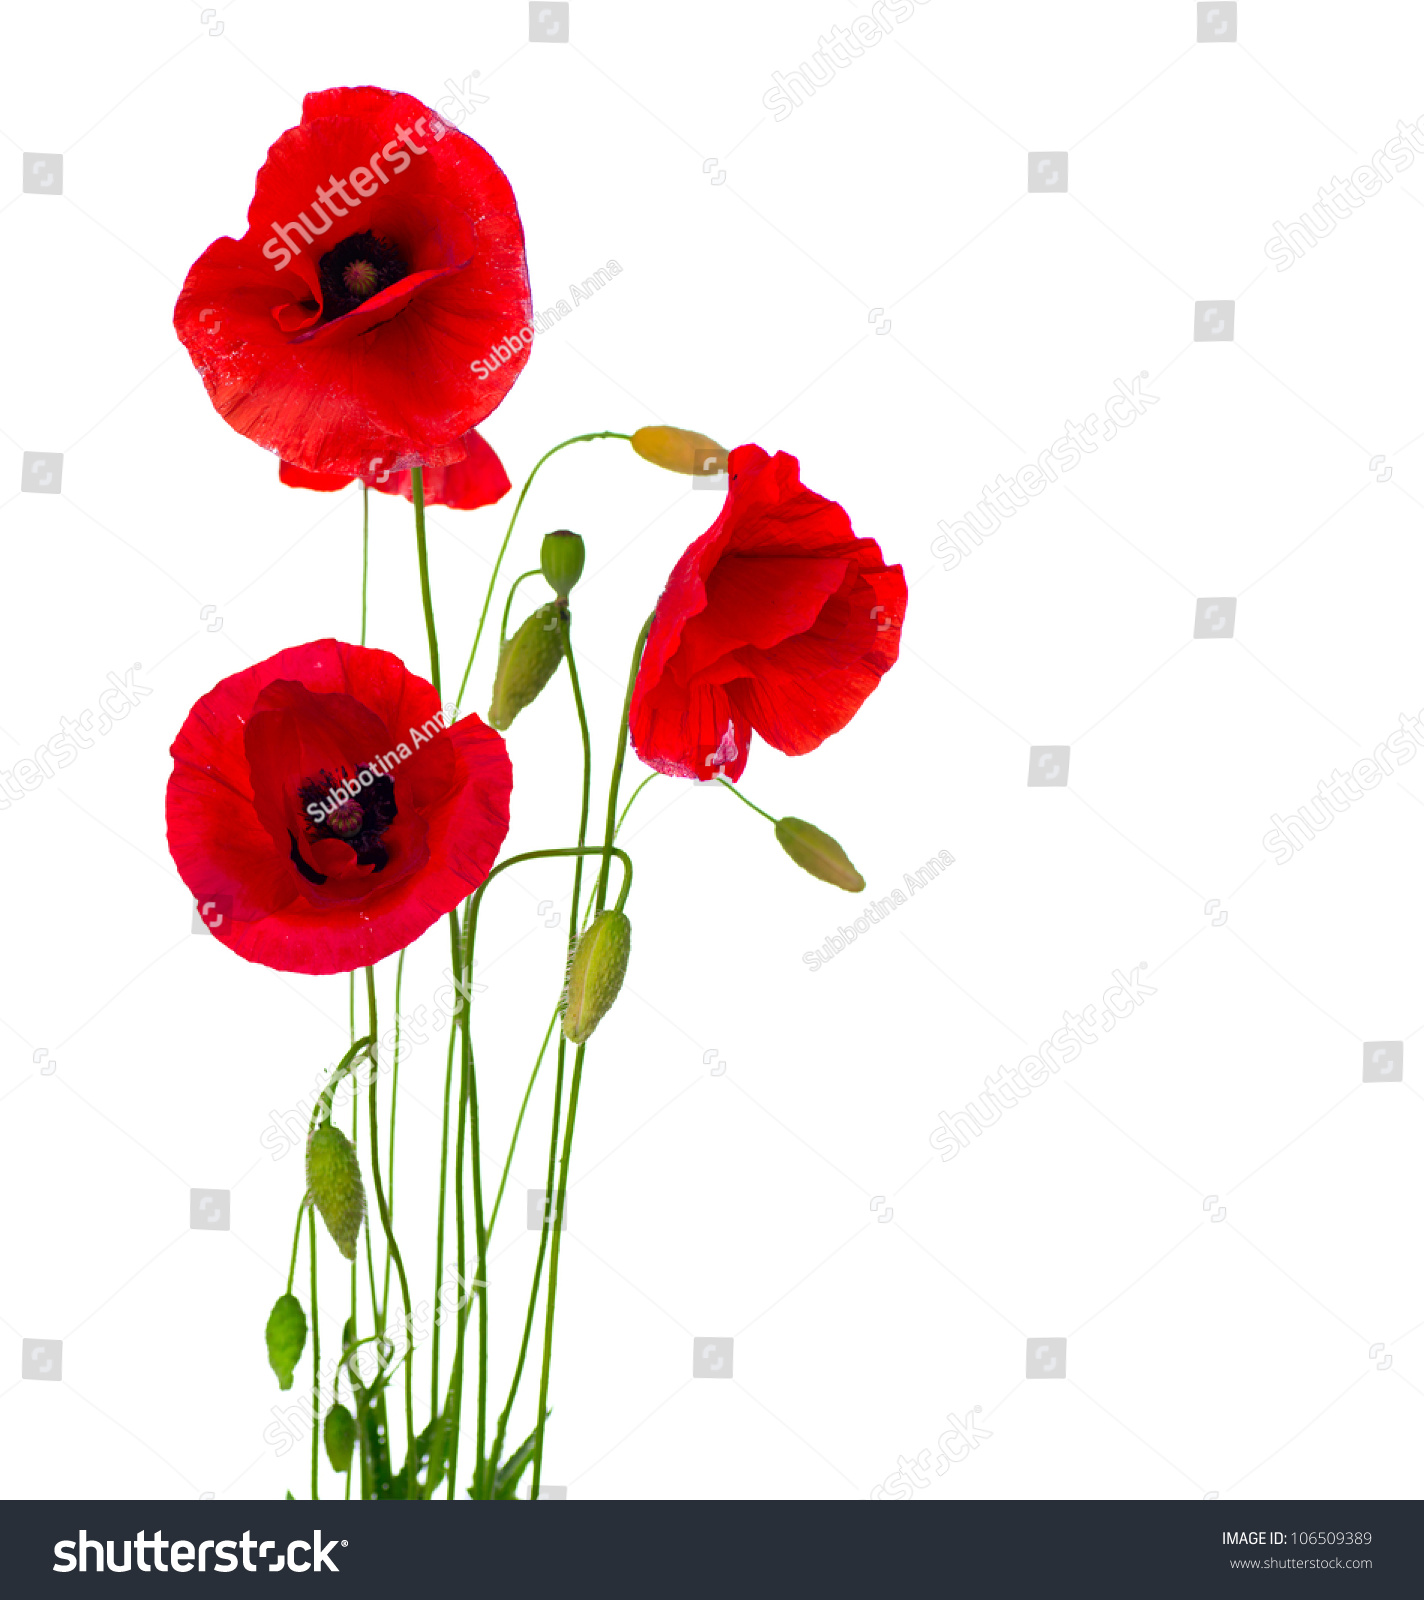 Red Poppy Flower Isolated On White Stock Photo Edit Now 106509389